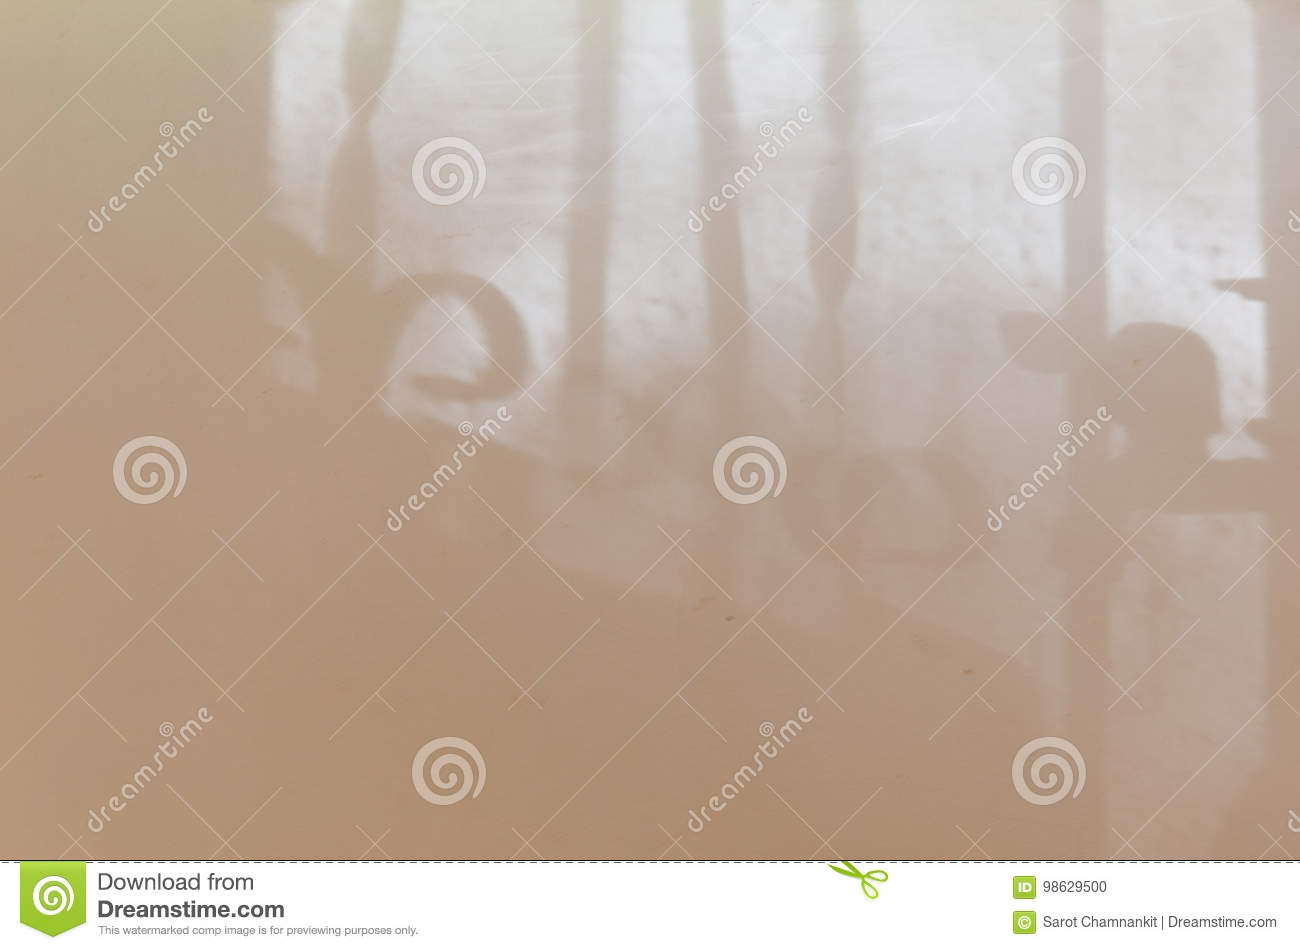 Light And Shadow On Wall From The Window. Stock Photo - Image of ...